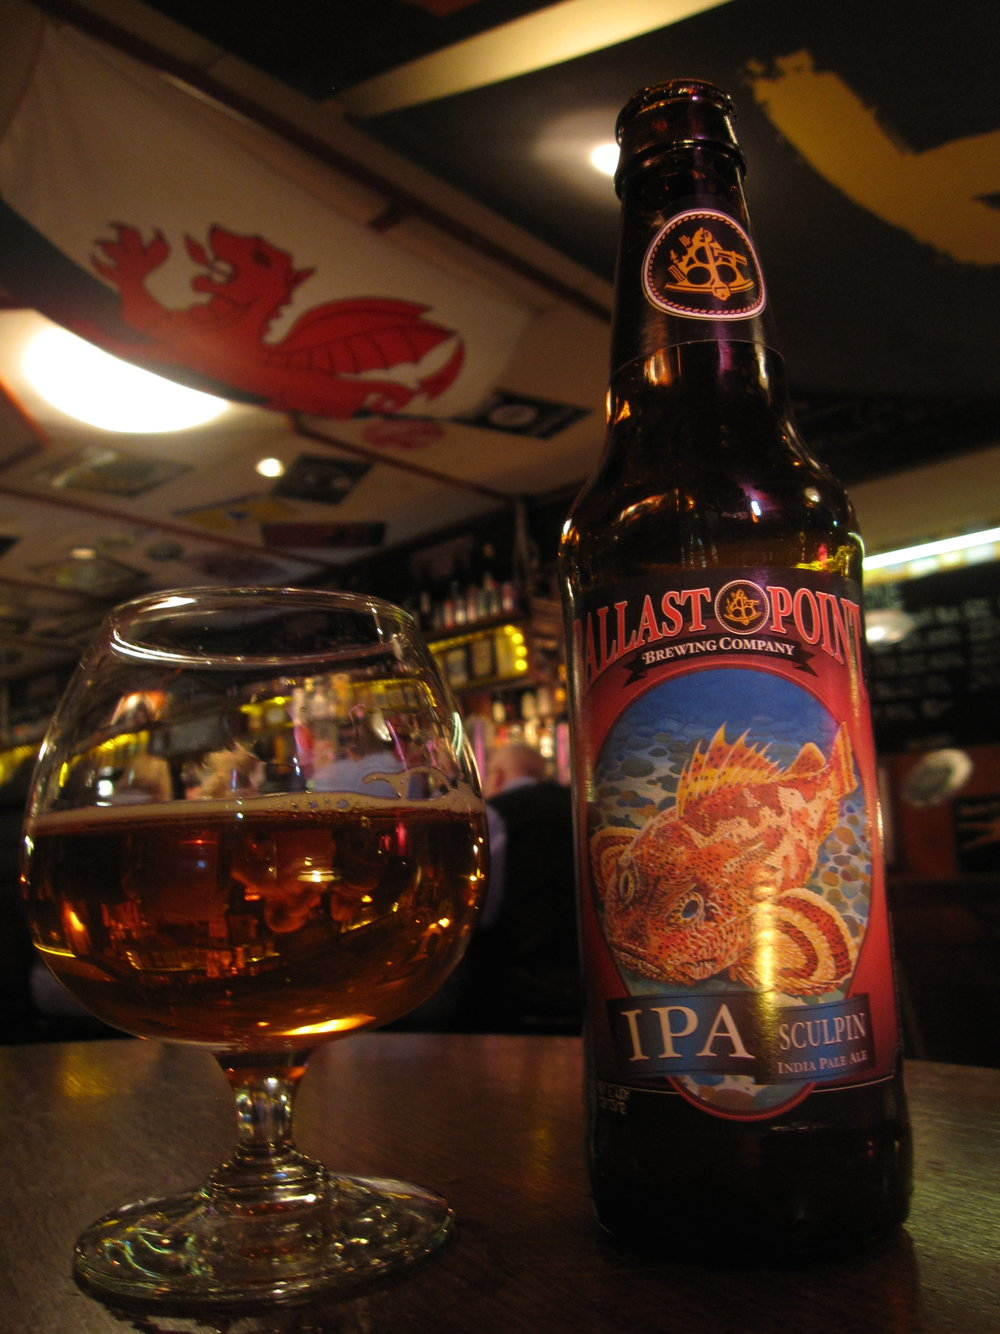 A bottle of Sculpin IPA from Ballast Point Brewing Company in San Diego, California, at Oliver Twist in Stockholm. (Bernt Rostad/Flickr)